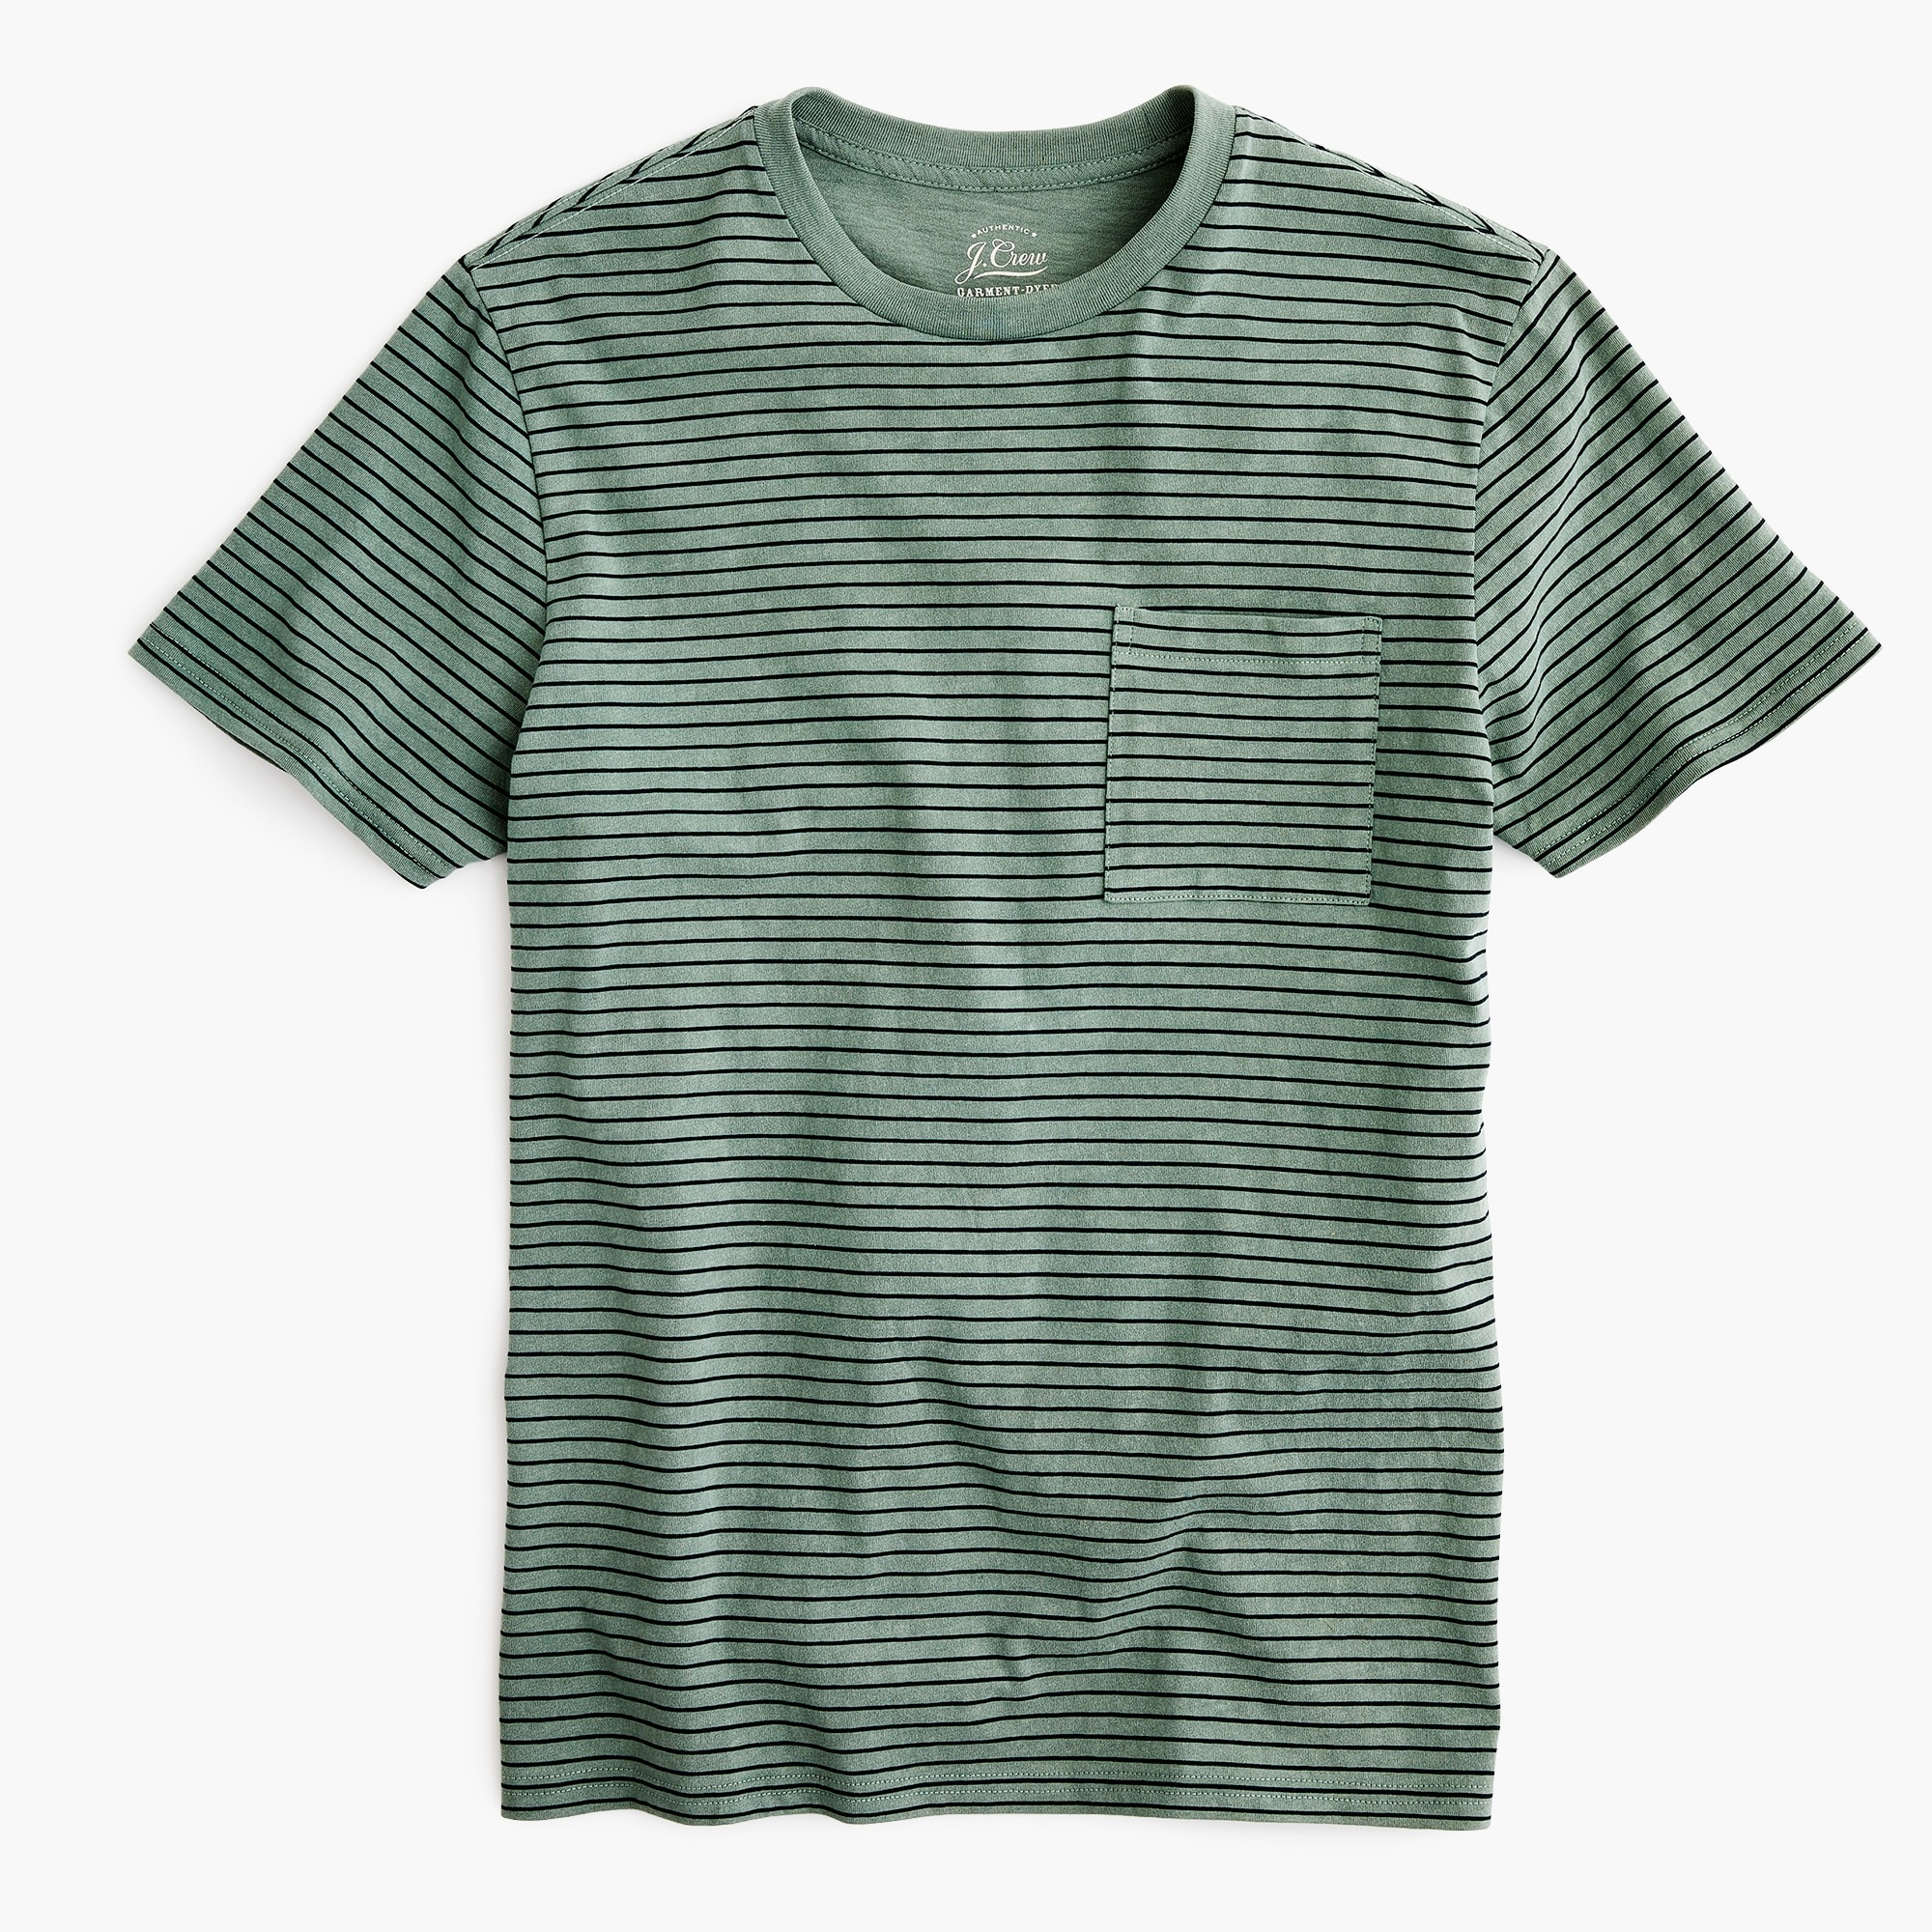 Garment-dyed T-shirt in green stripe